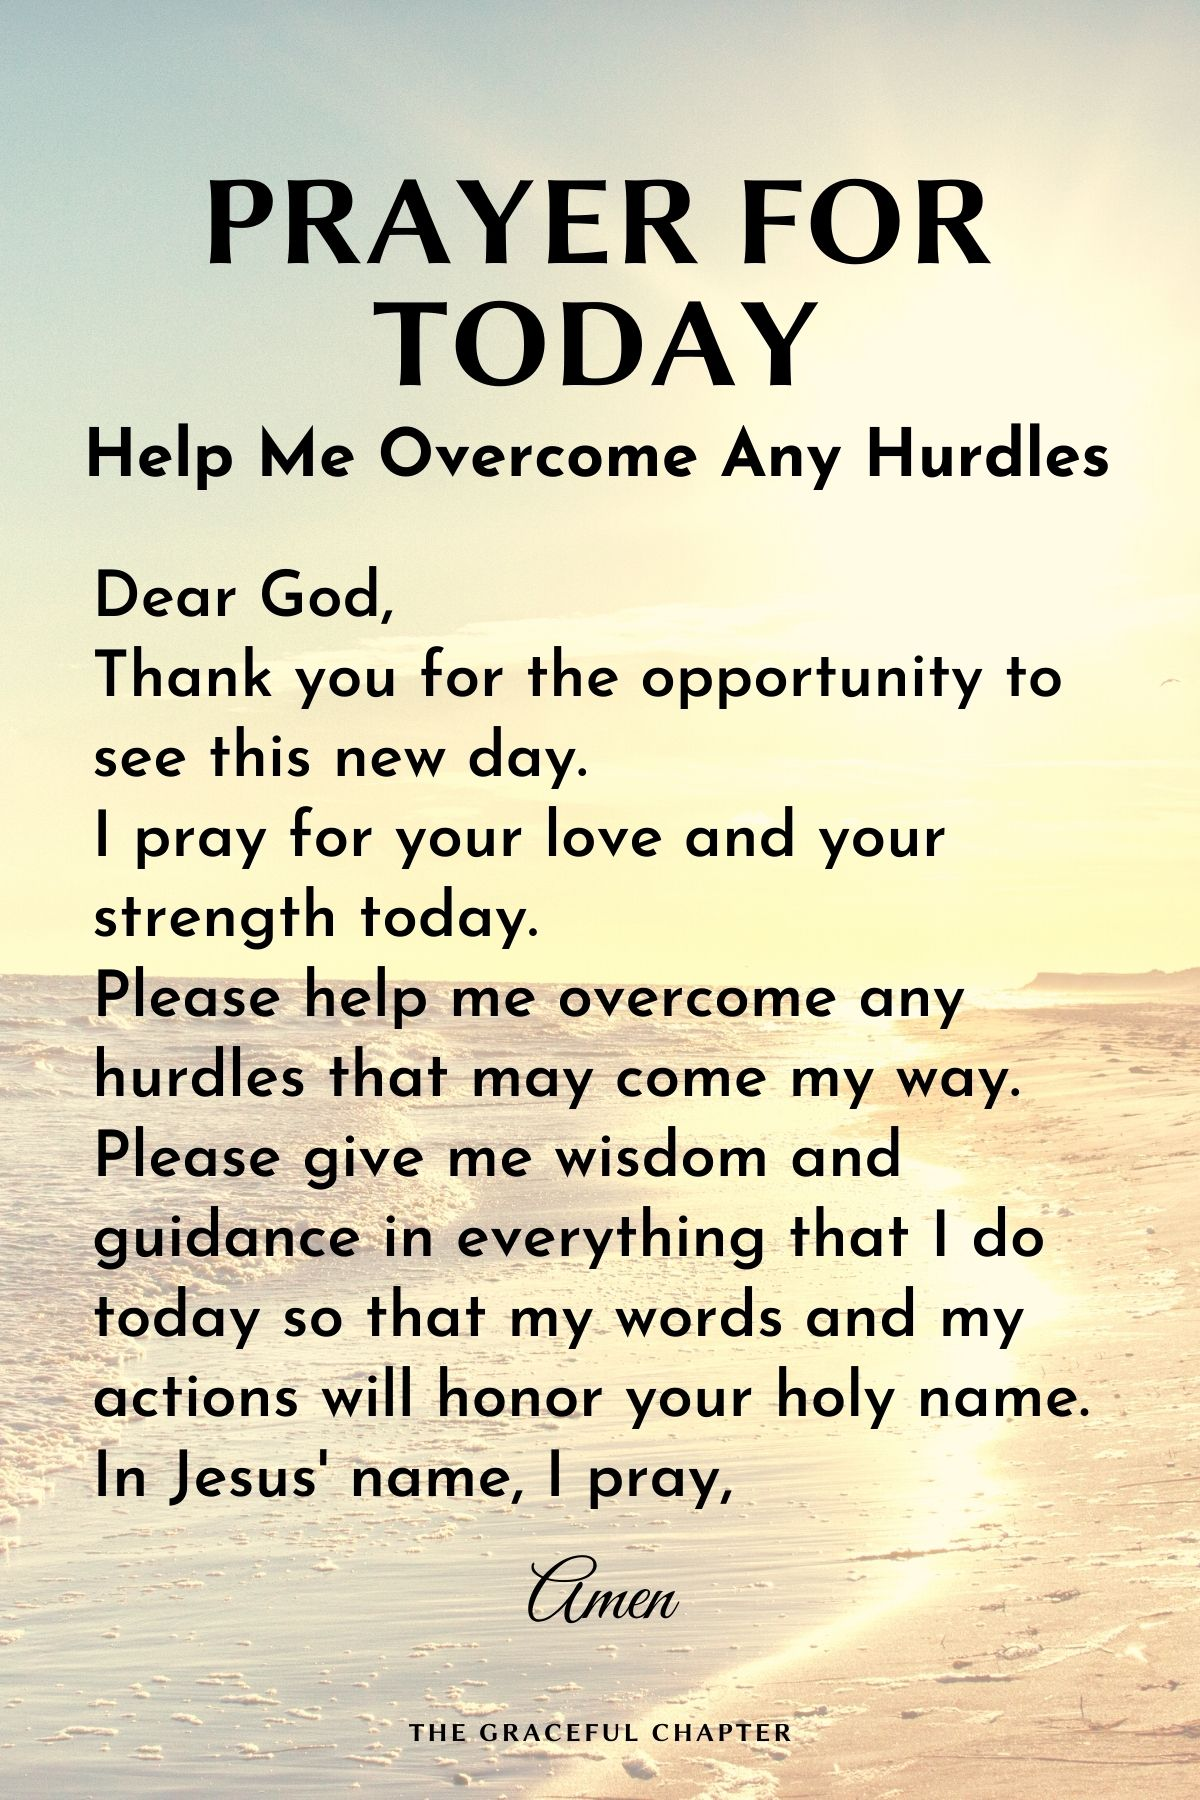 Prayers for today - Help me overcome any hurdles